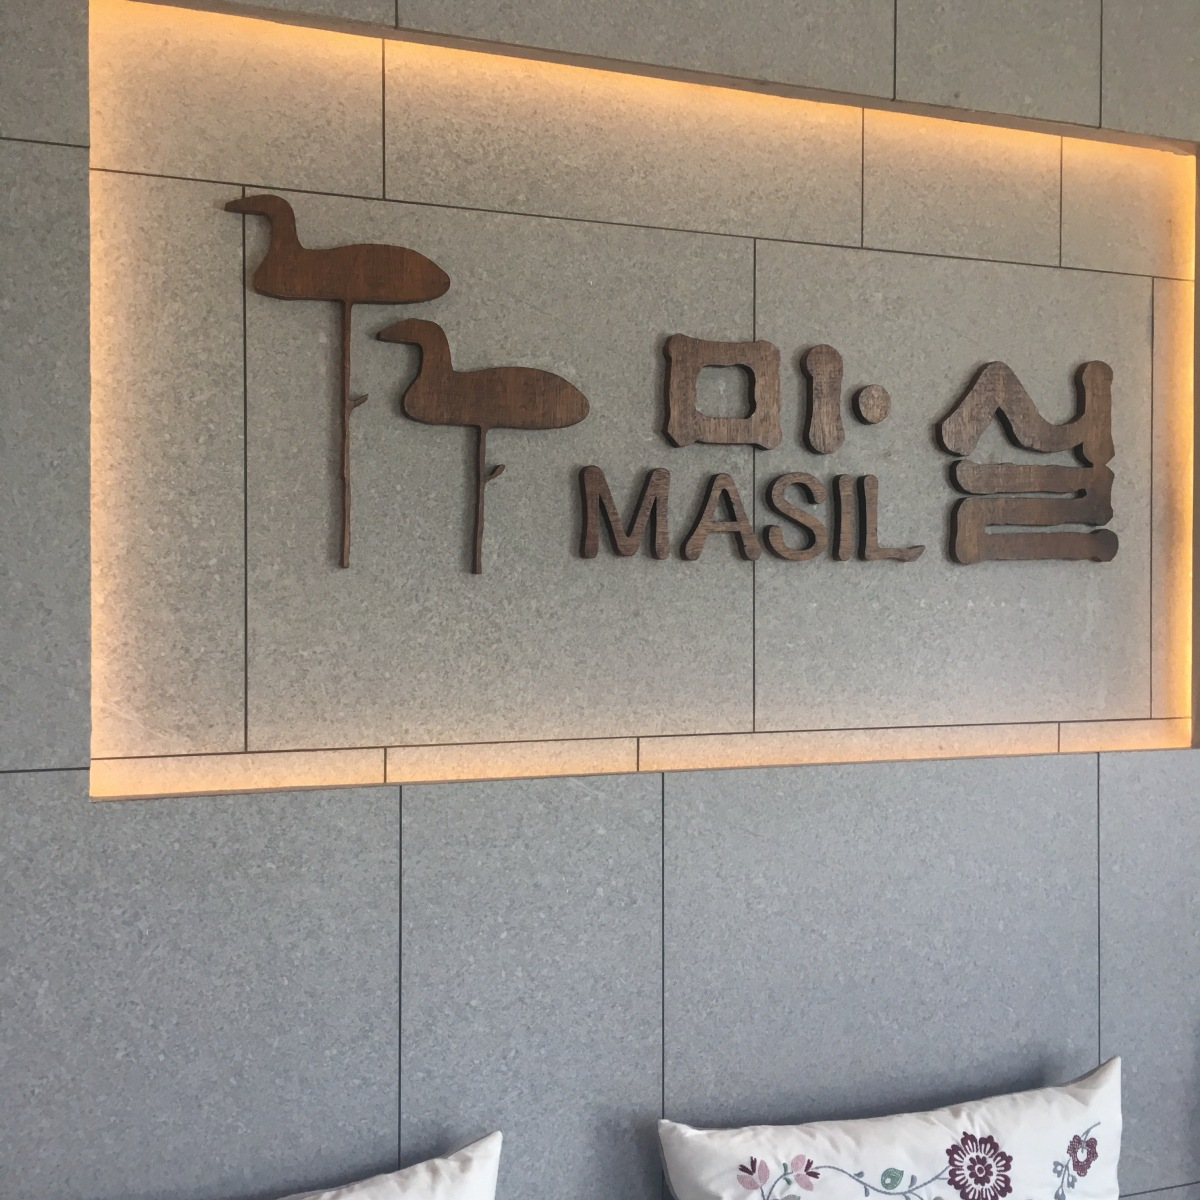 My Korean Food adventure continues at Masil